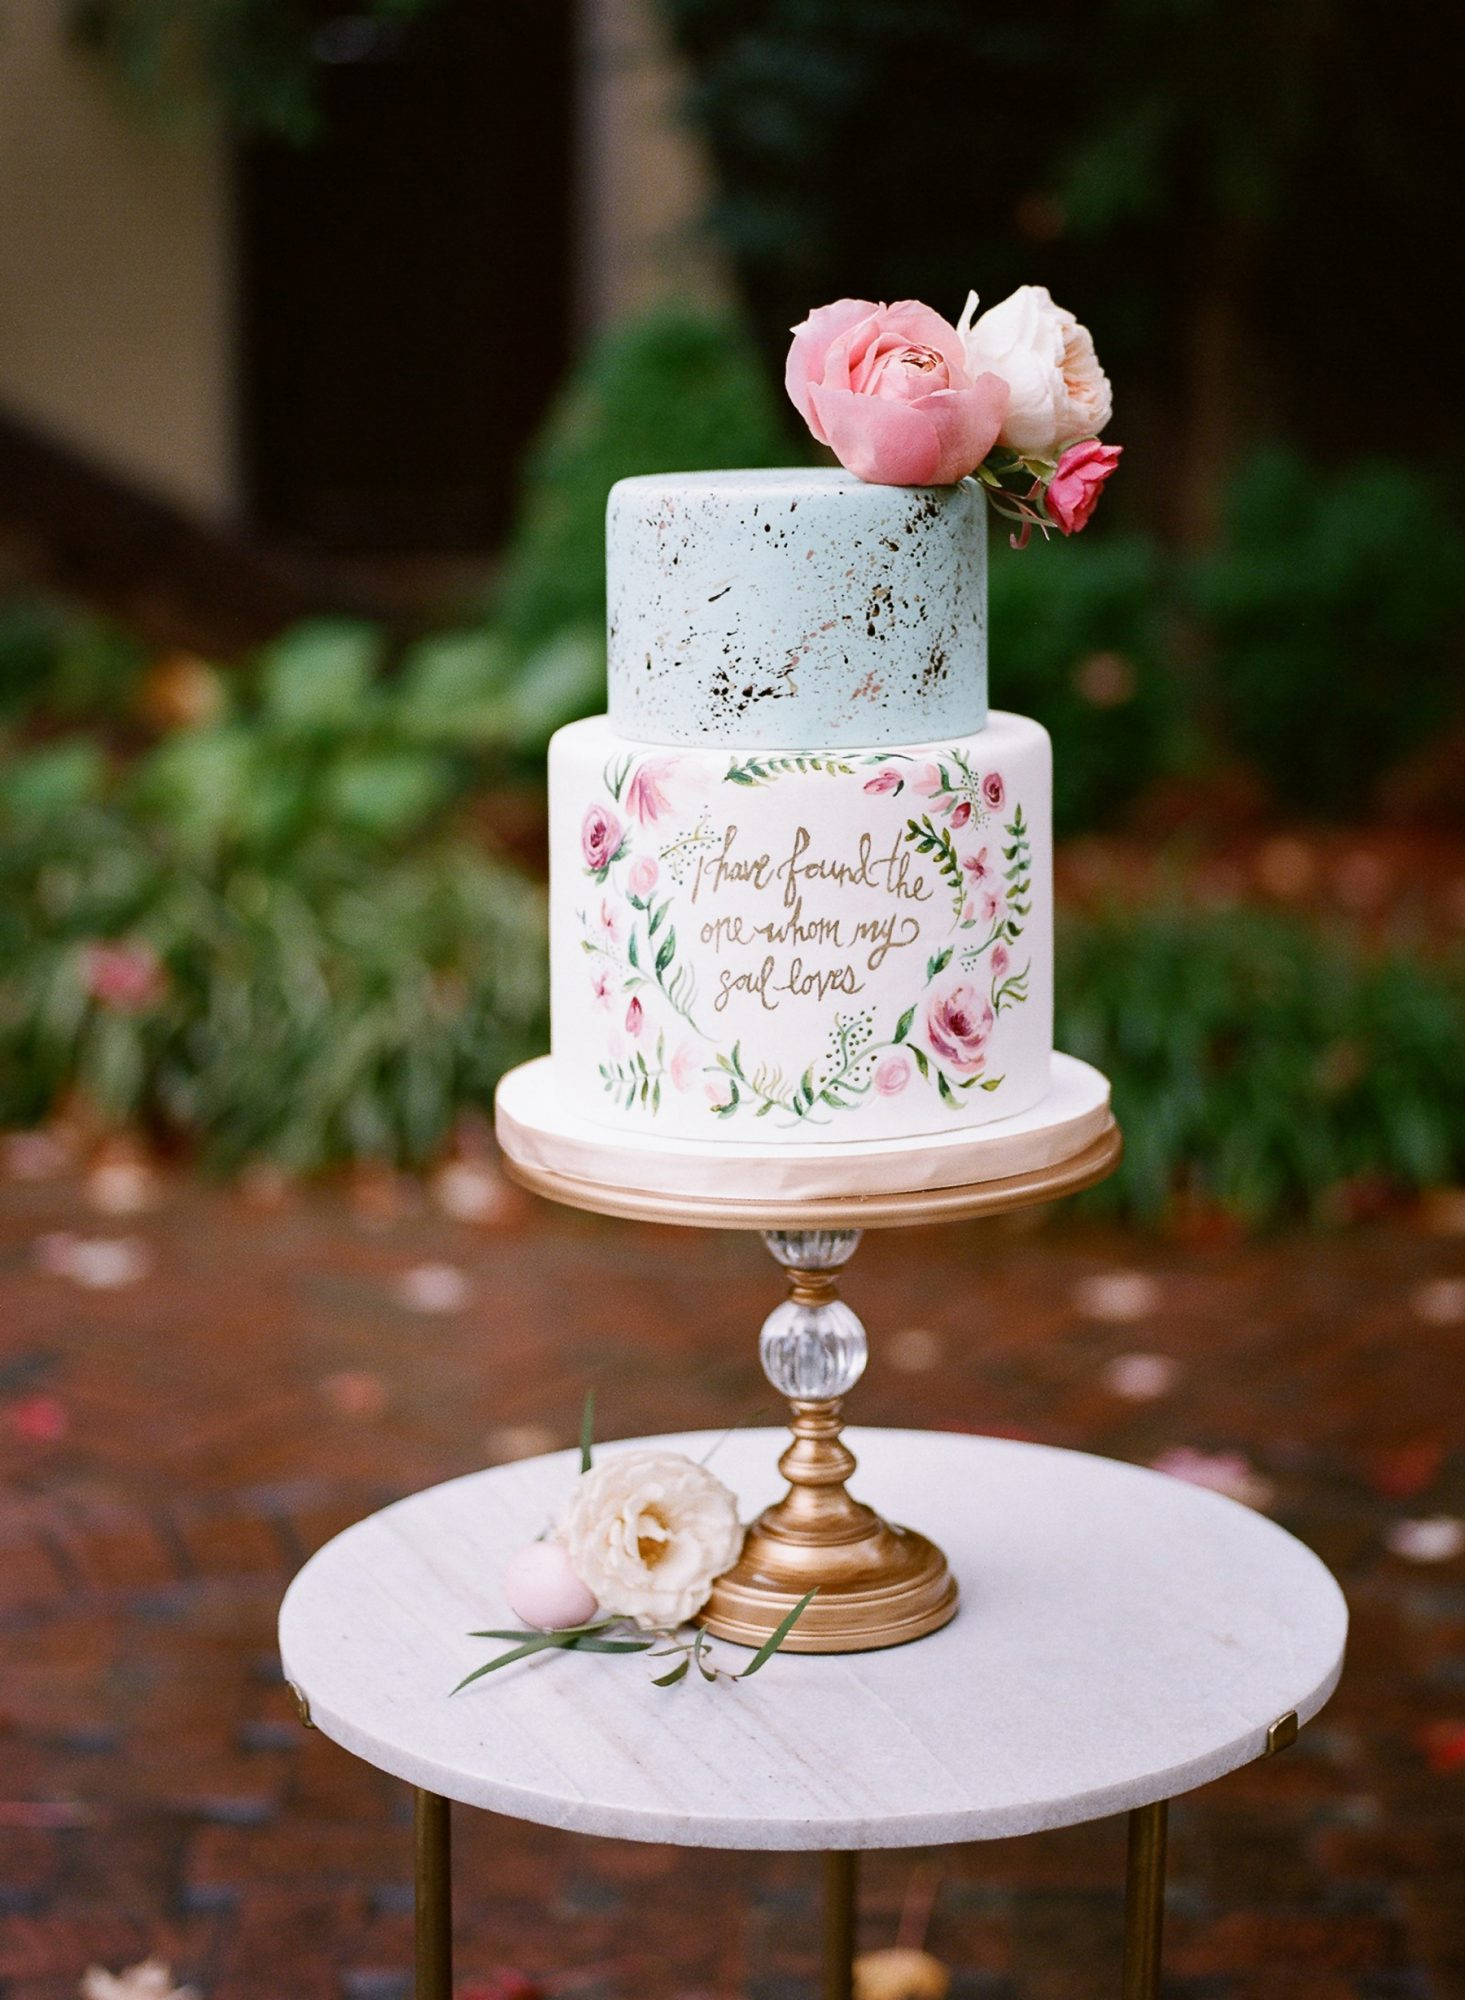 Small Wedding Cake with Quote